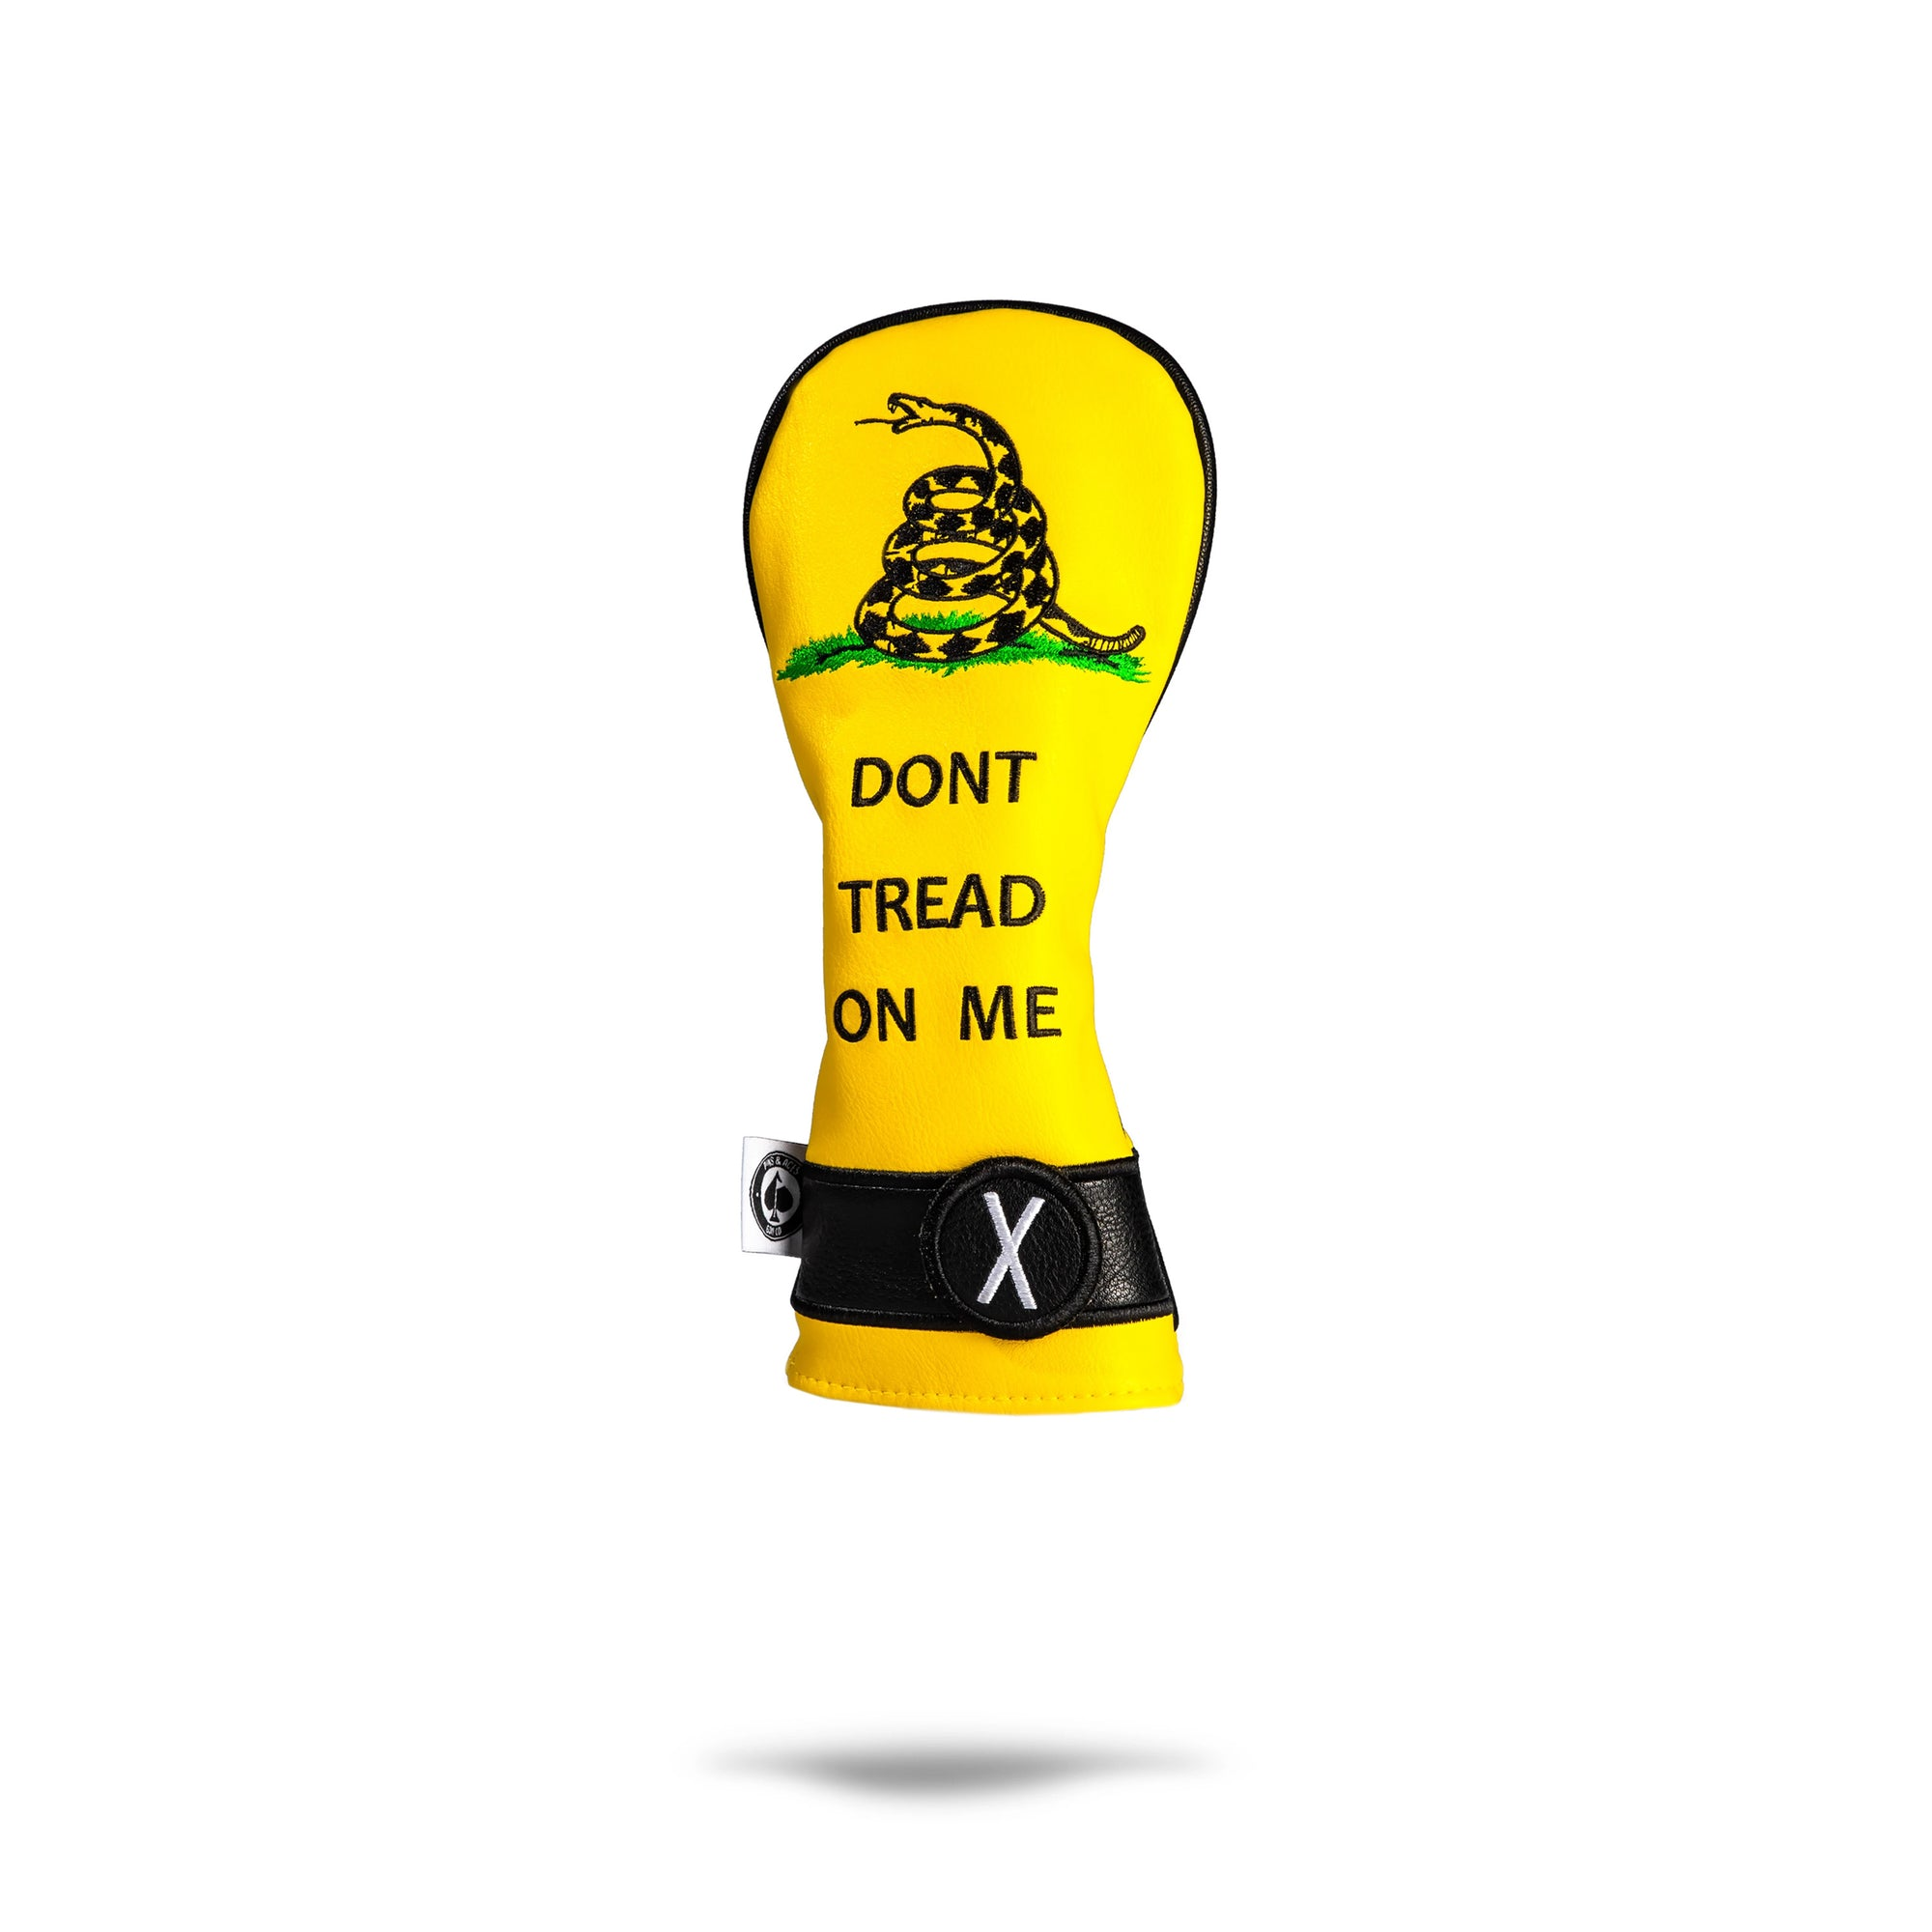 DONT TREAD ON ME - Rescue